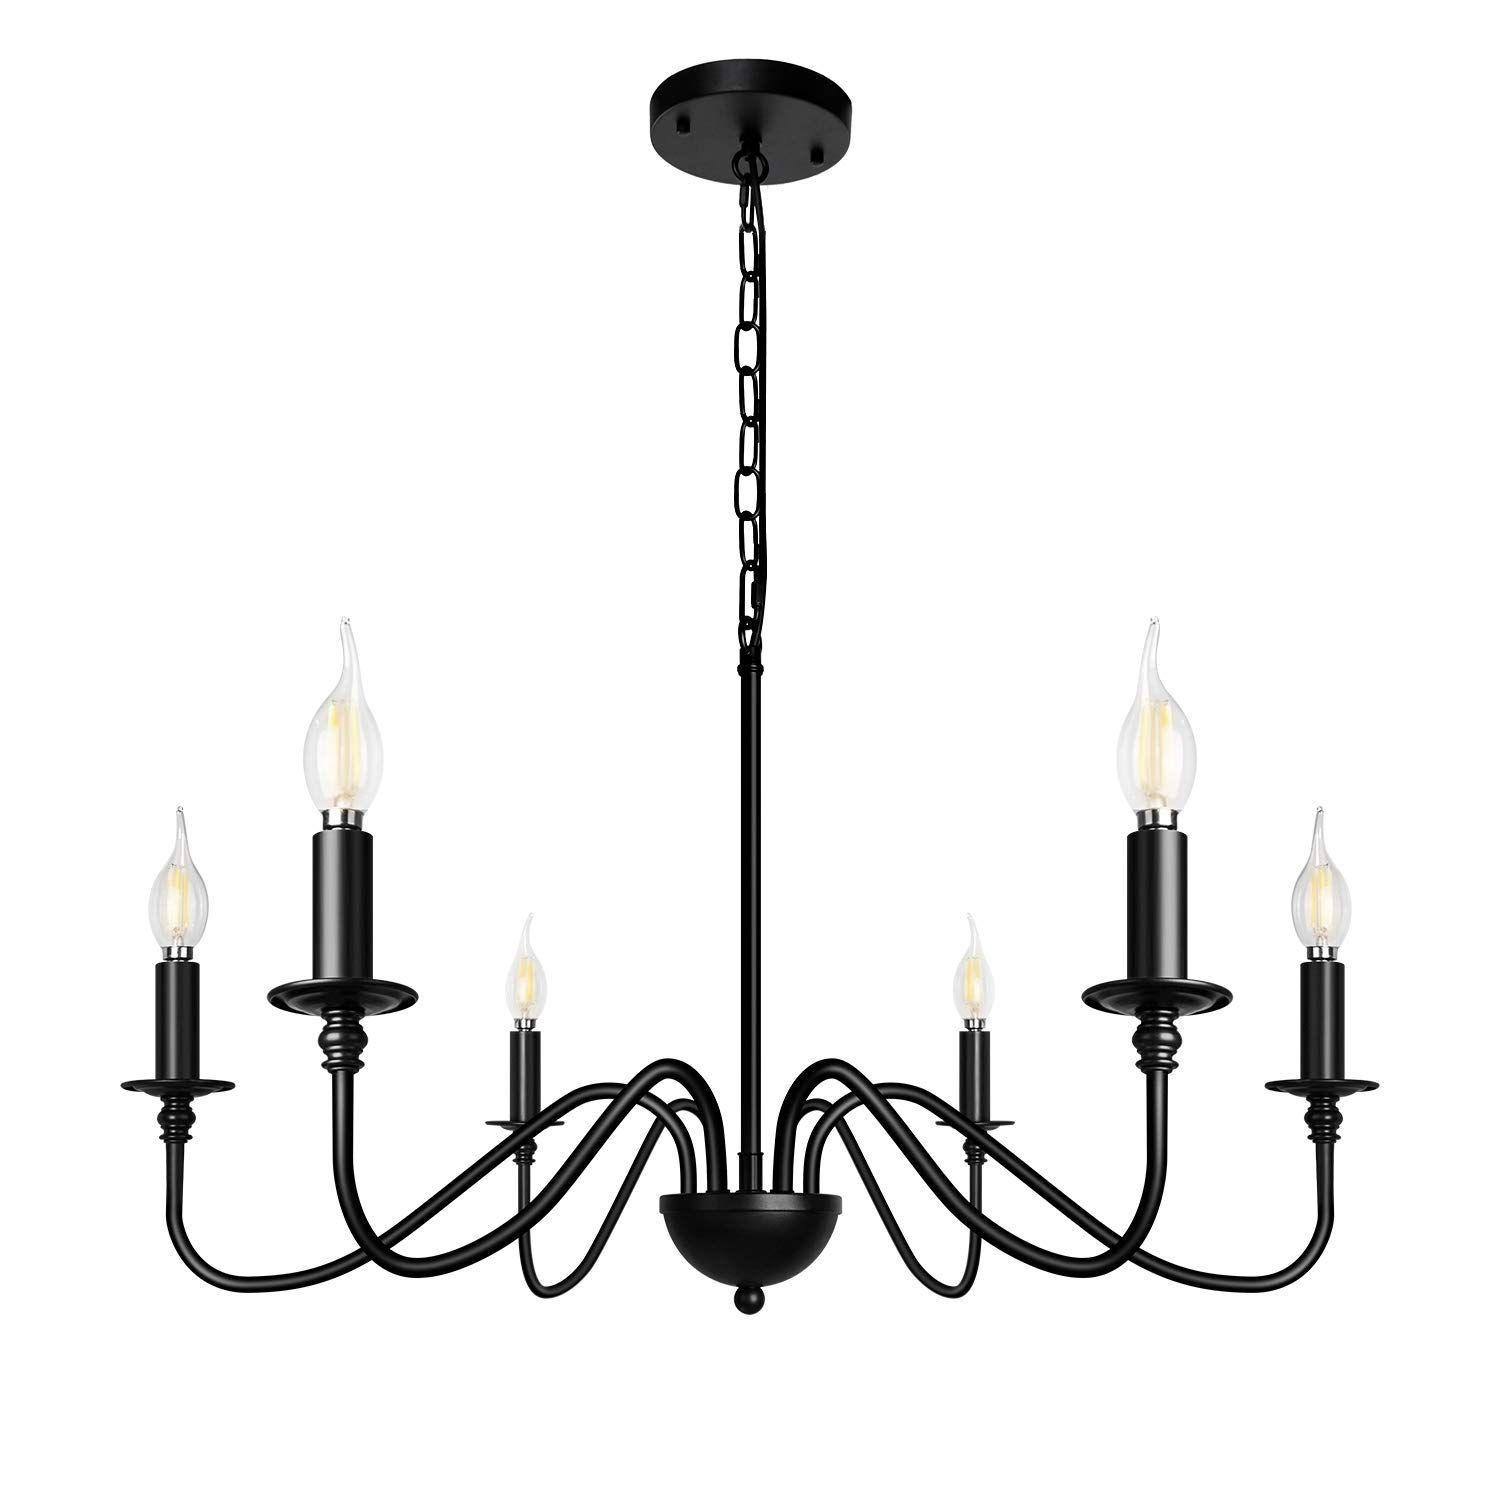 Z Light 6 Light Chandeliers Black Farmhouse Classic Candle Ceiling Hanging Light Fixture Rustic Pe In 2020 Hanging Ceiling Lights Candle Ceiling Hanging Light Fixtures